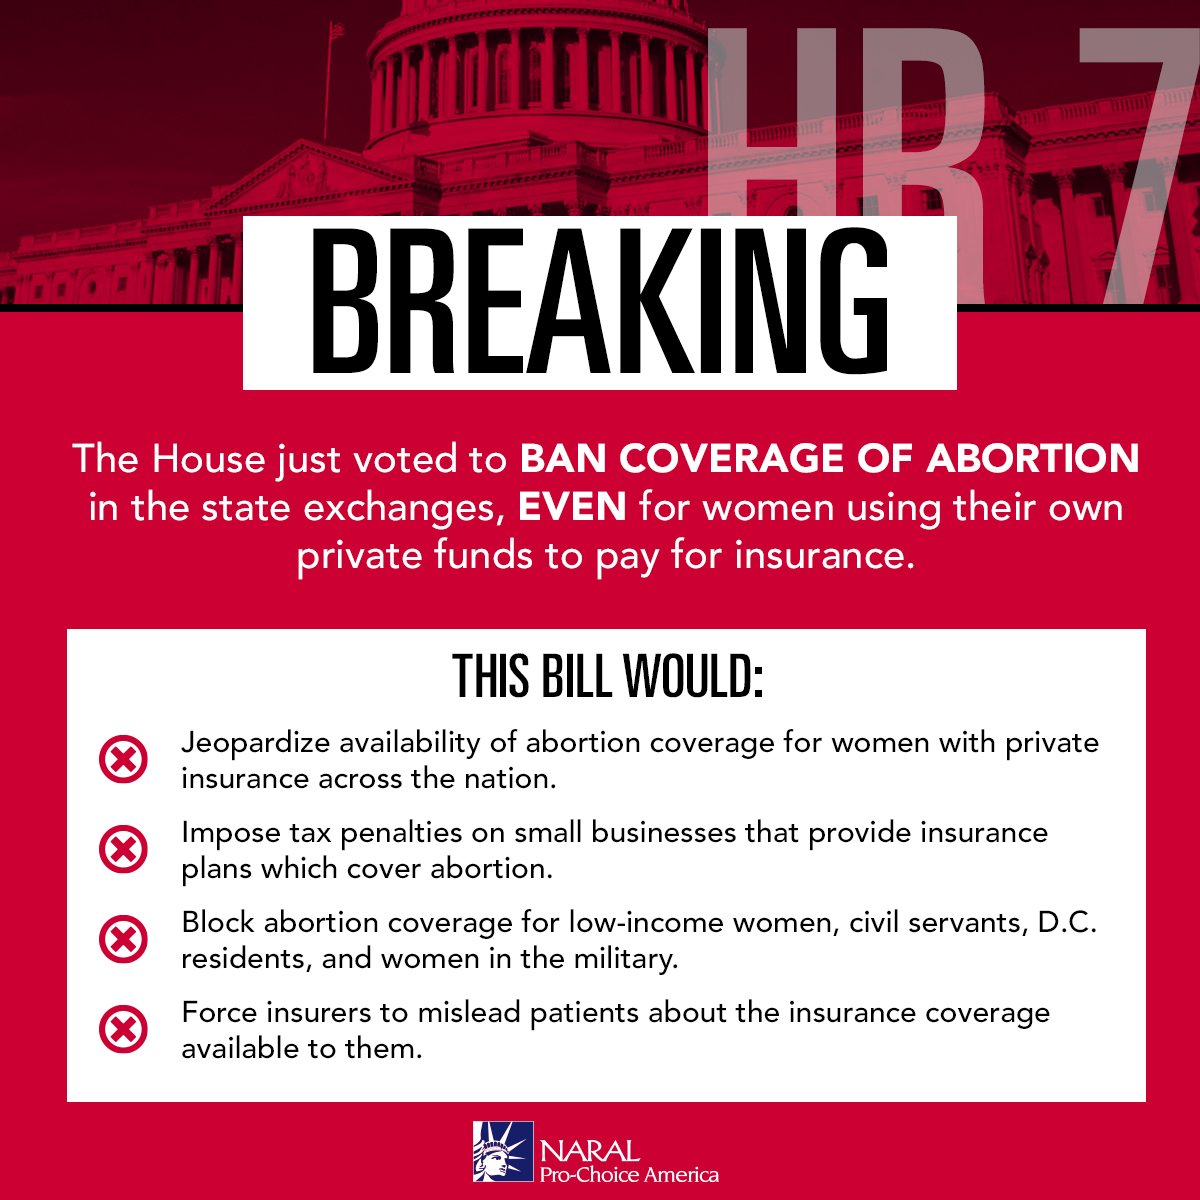 Republicans in Congress will stop at NOTHING to try to make it impossible to access abortion. #HR7 https://t.co/Sb0R0v6zOM